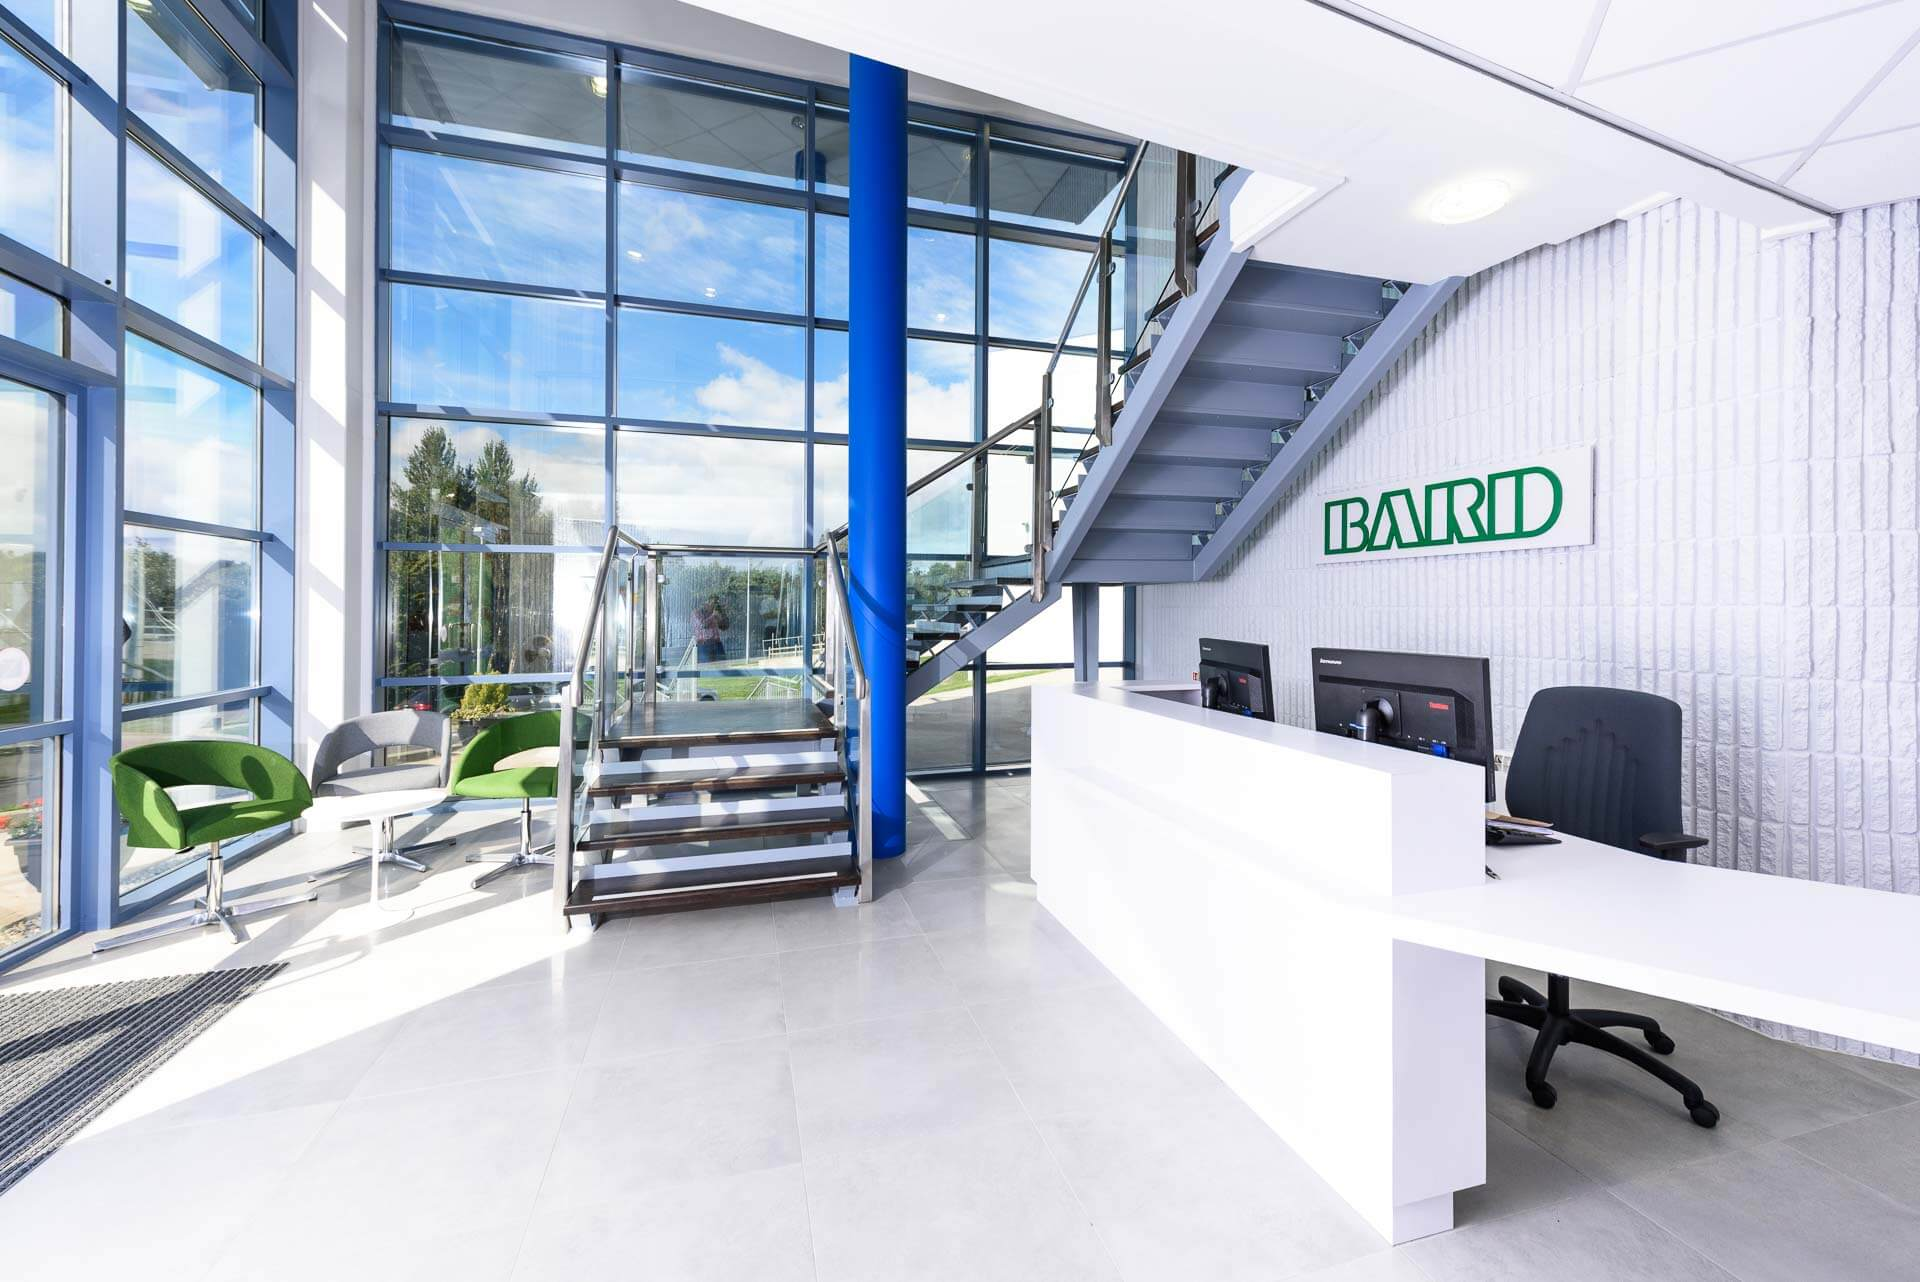 Double height entrance atrium with steel and glass staircase with feature blue column, green and grey tub chairs and white laminate disabled accessible reception desk on grey large format porcelain tiles.